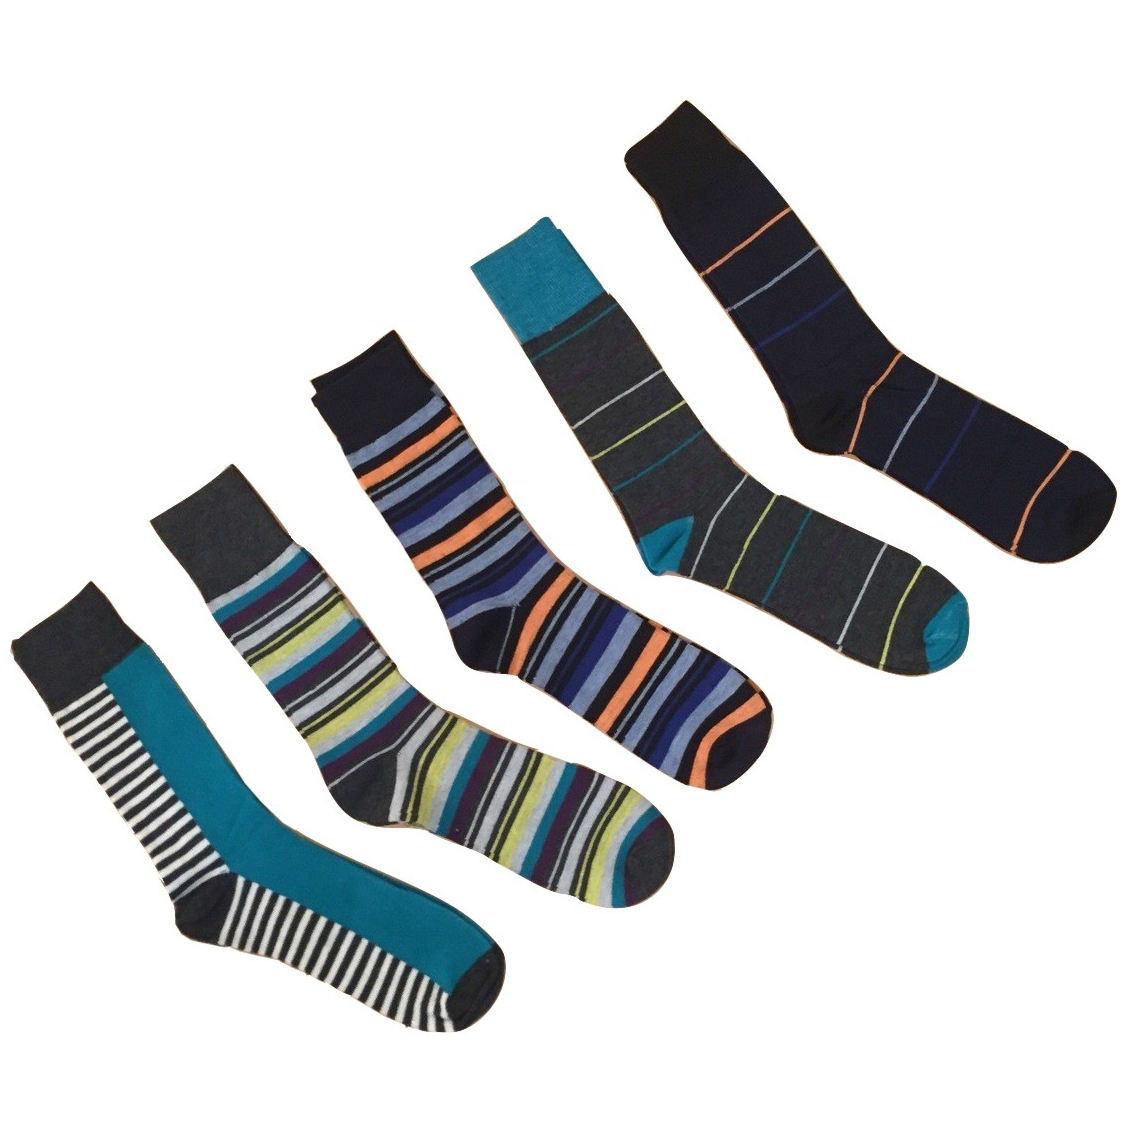 10-Pairs Men's Beverly Hills Polo Club Fashion Socks